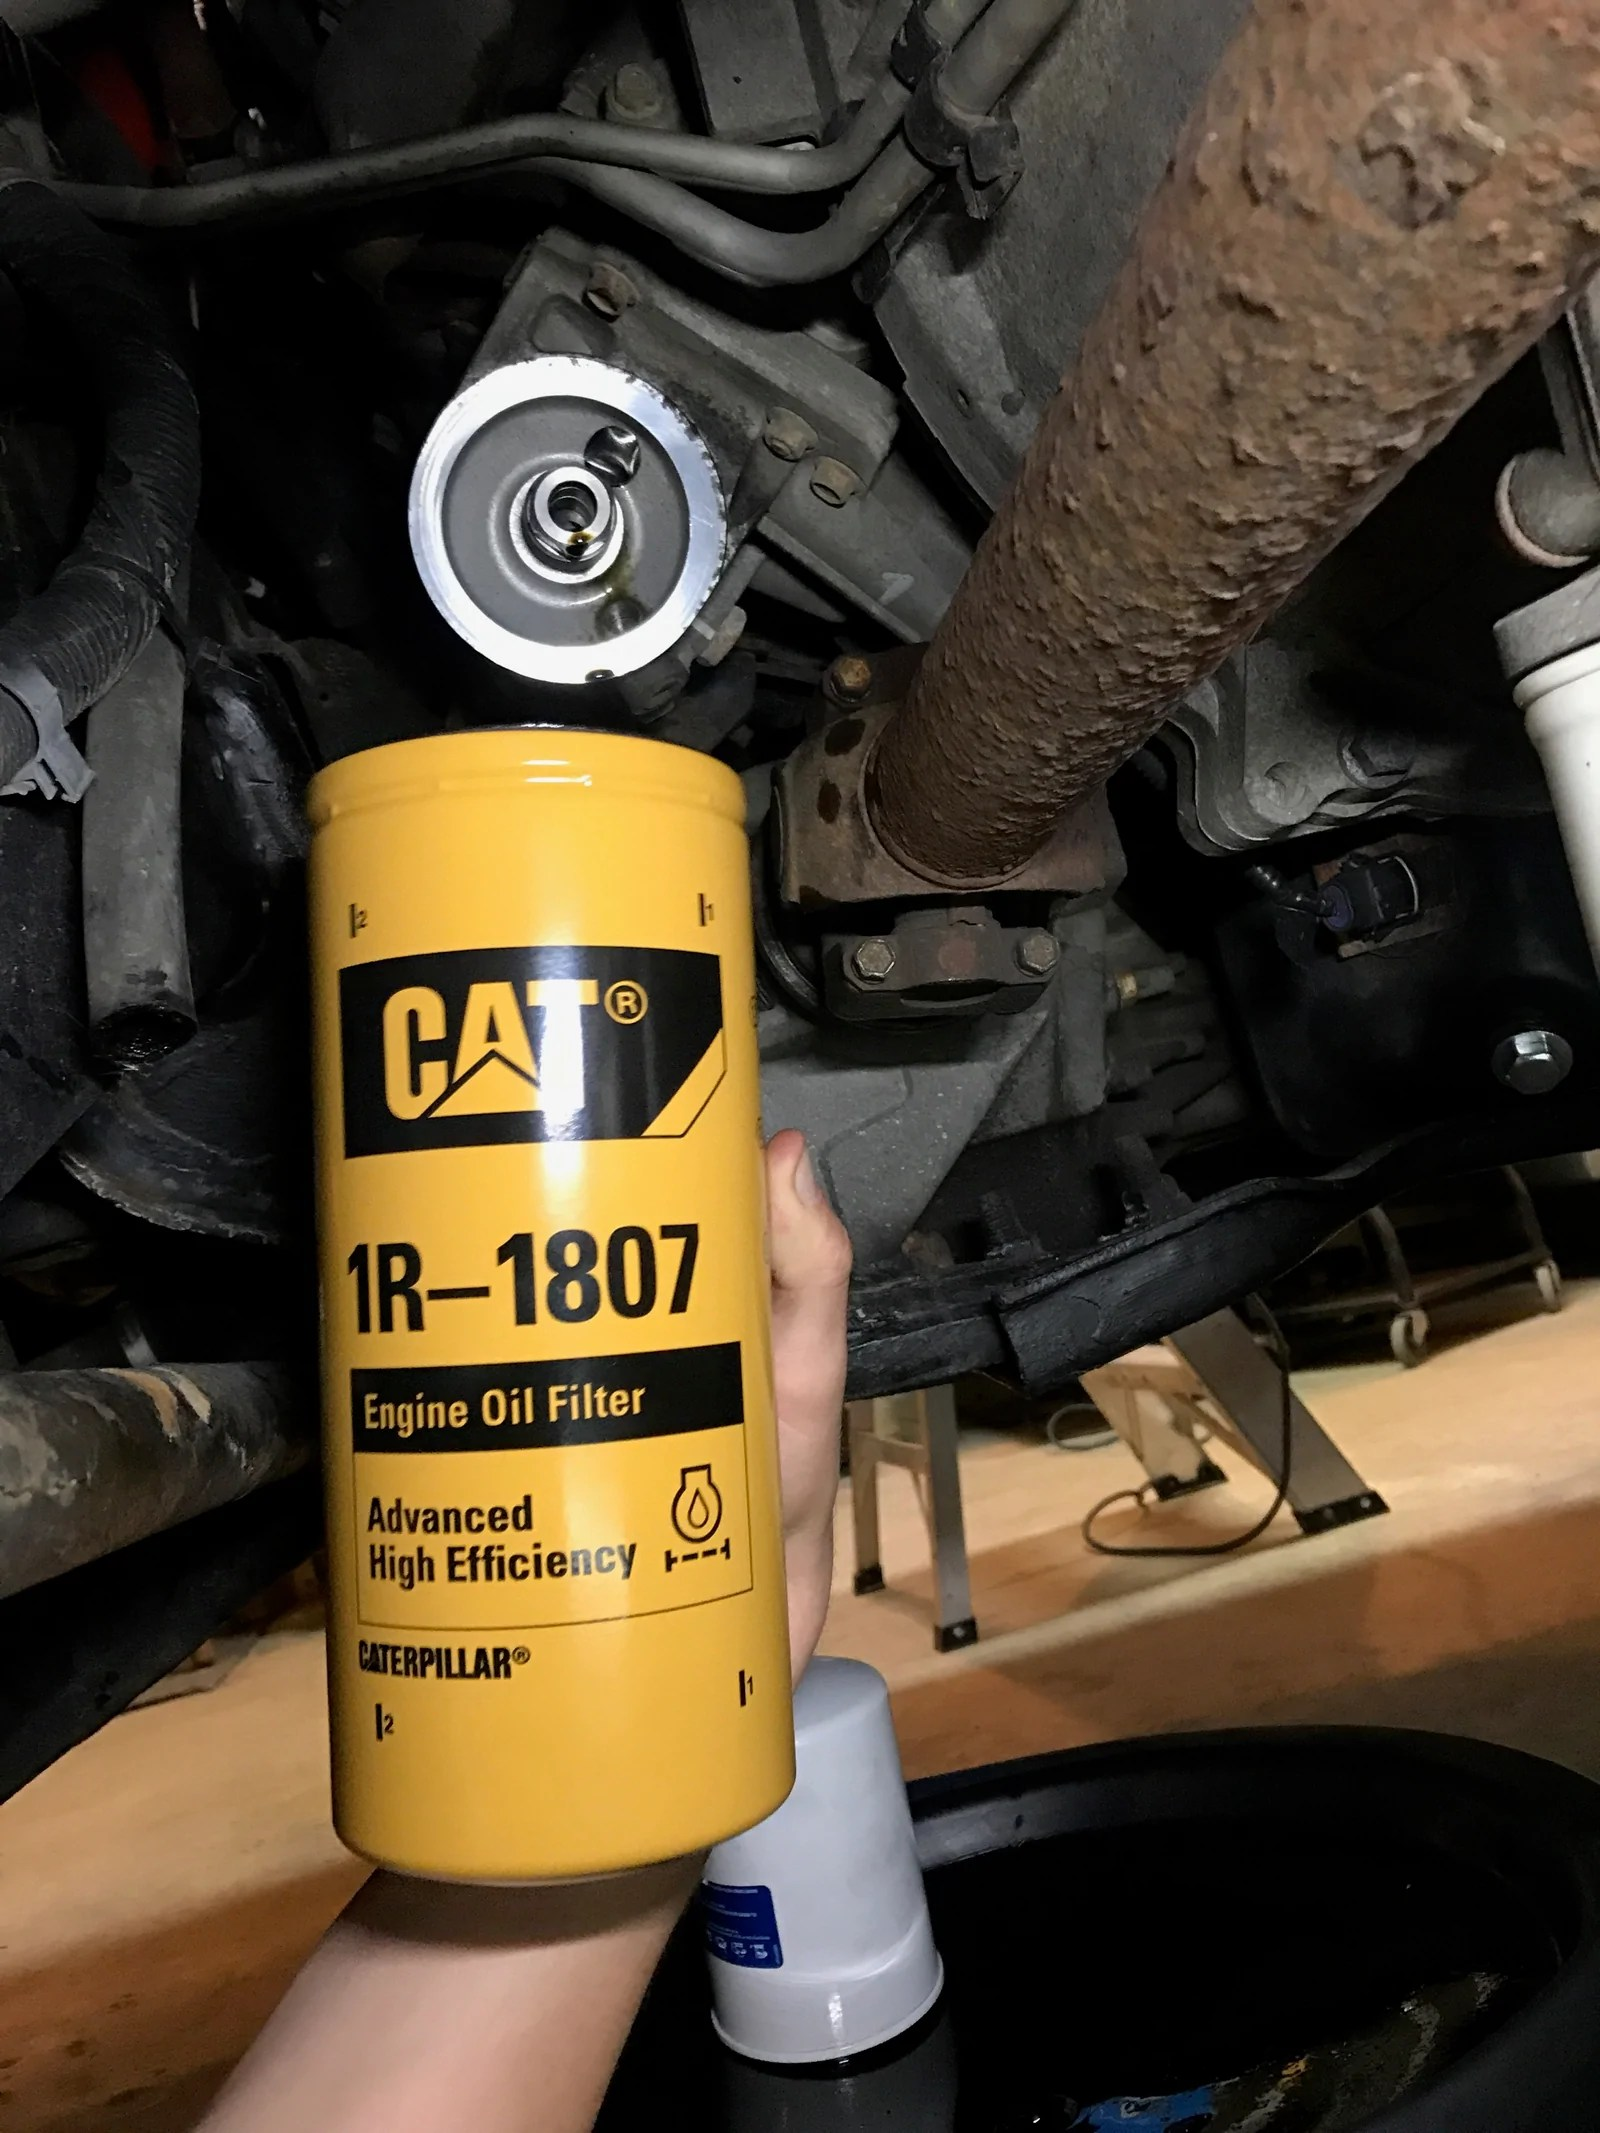 hight resolution of  duramax cat oil filter conversion kit